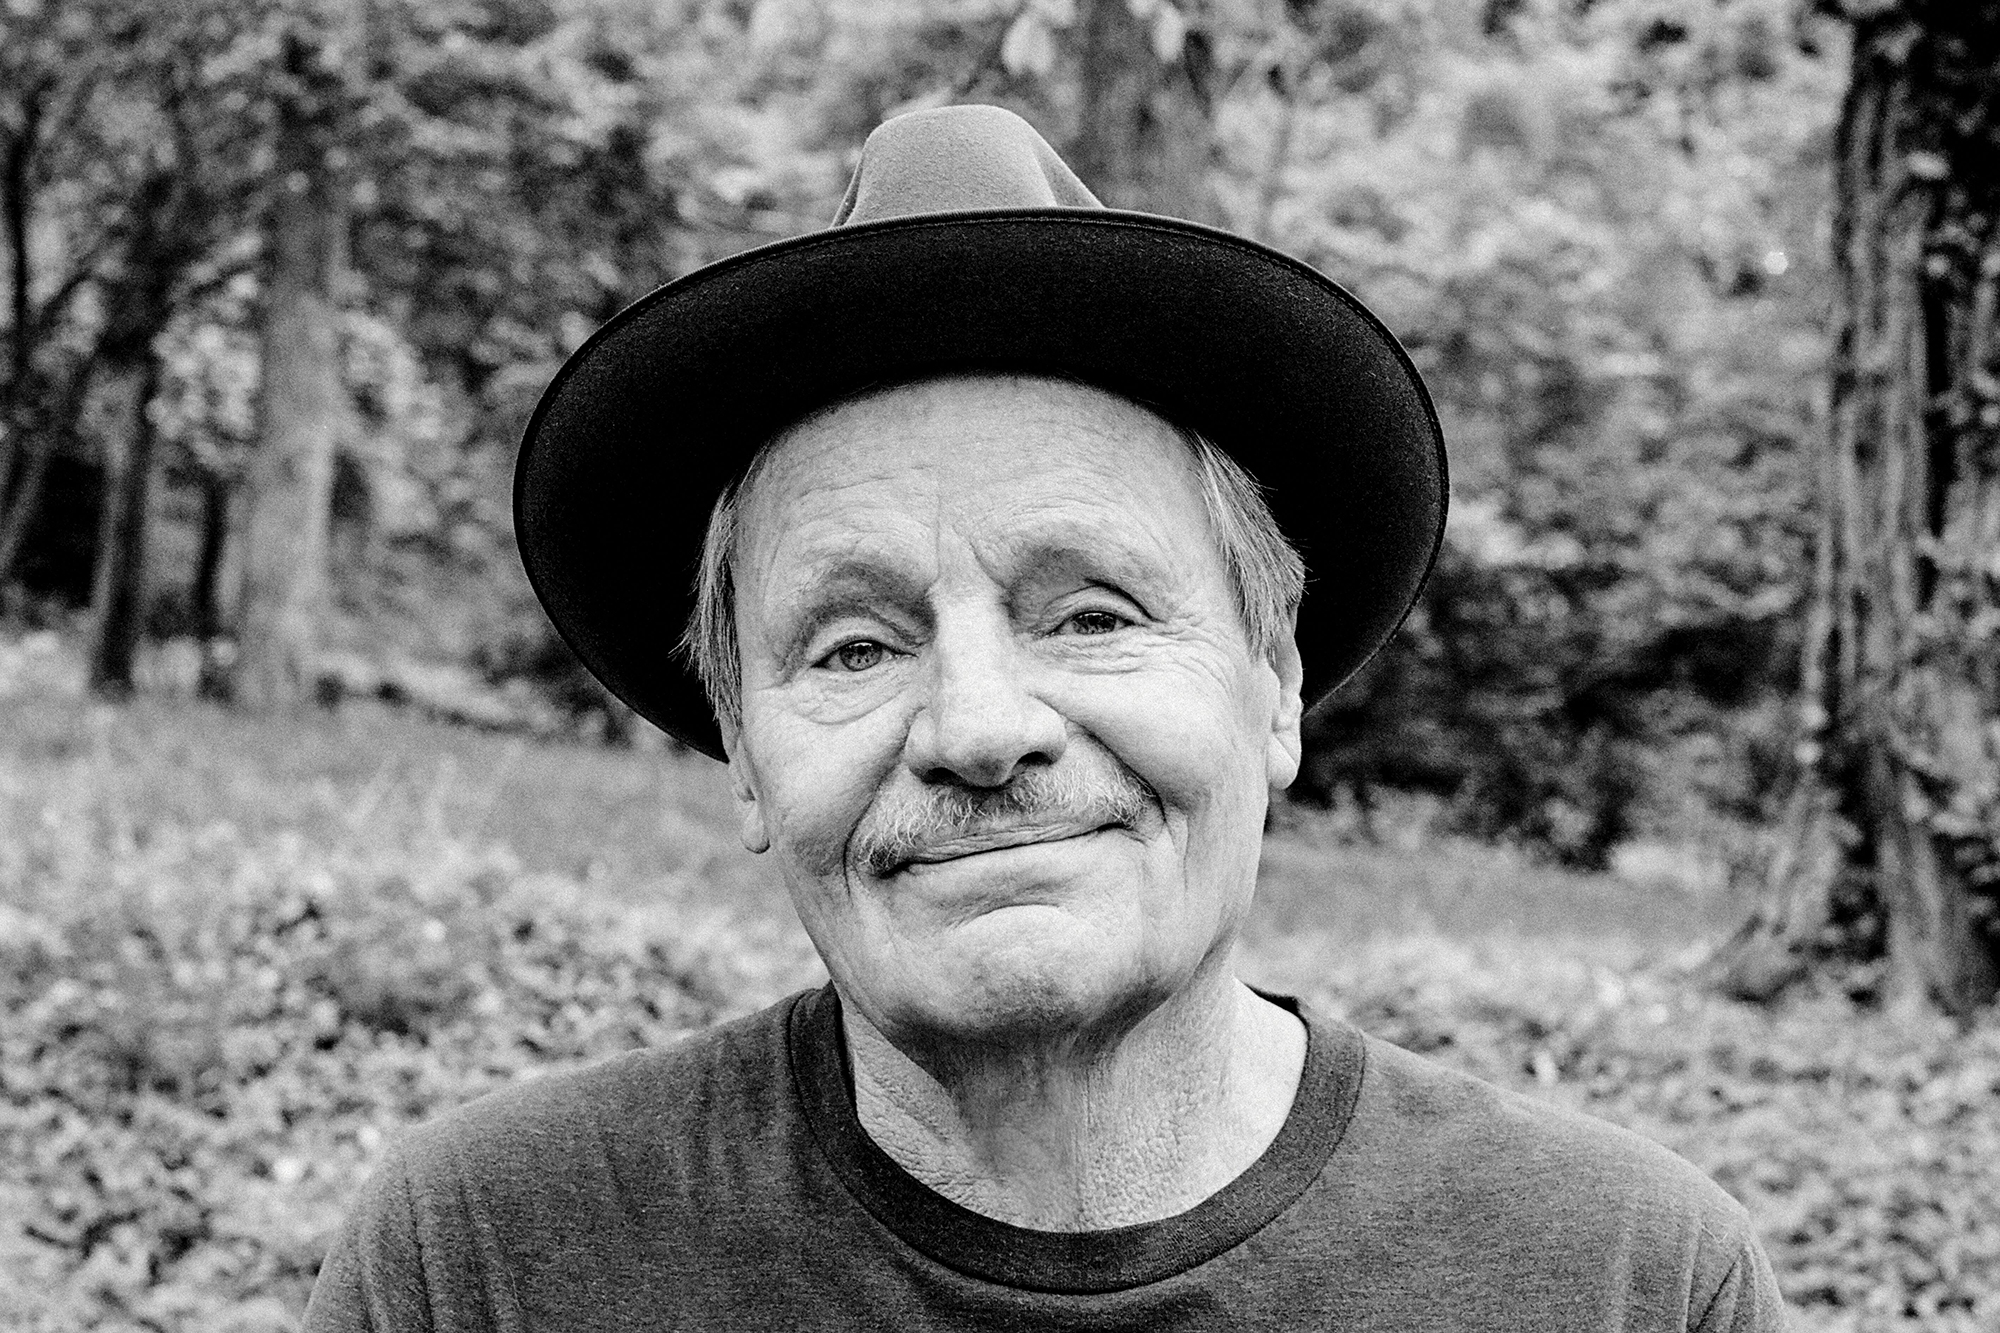 How Delbert McClinton Ignored the Rules for His New Album 'Tall, Dark & Handsome'